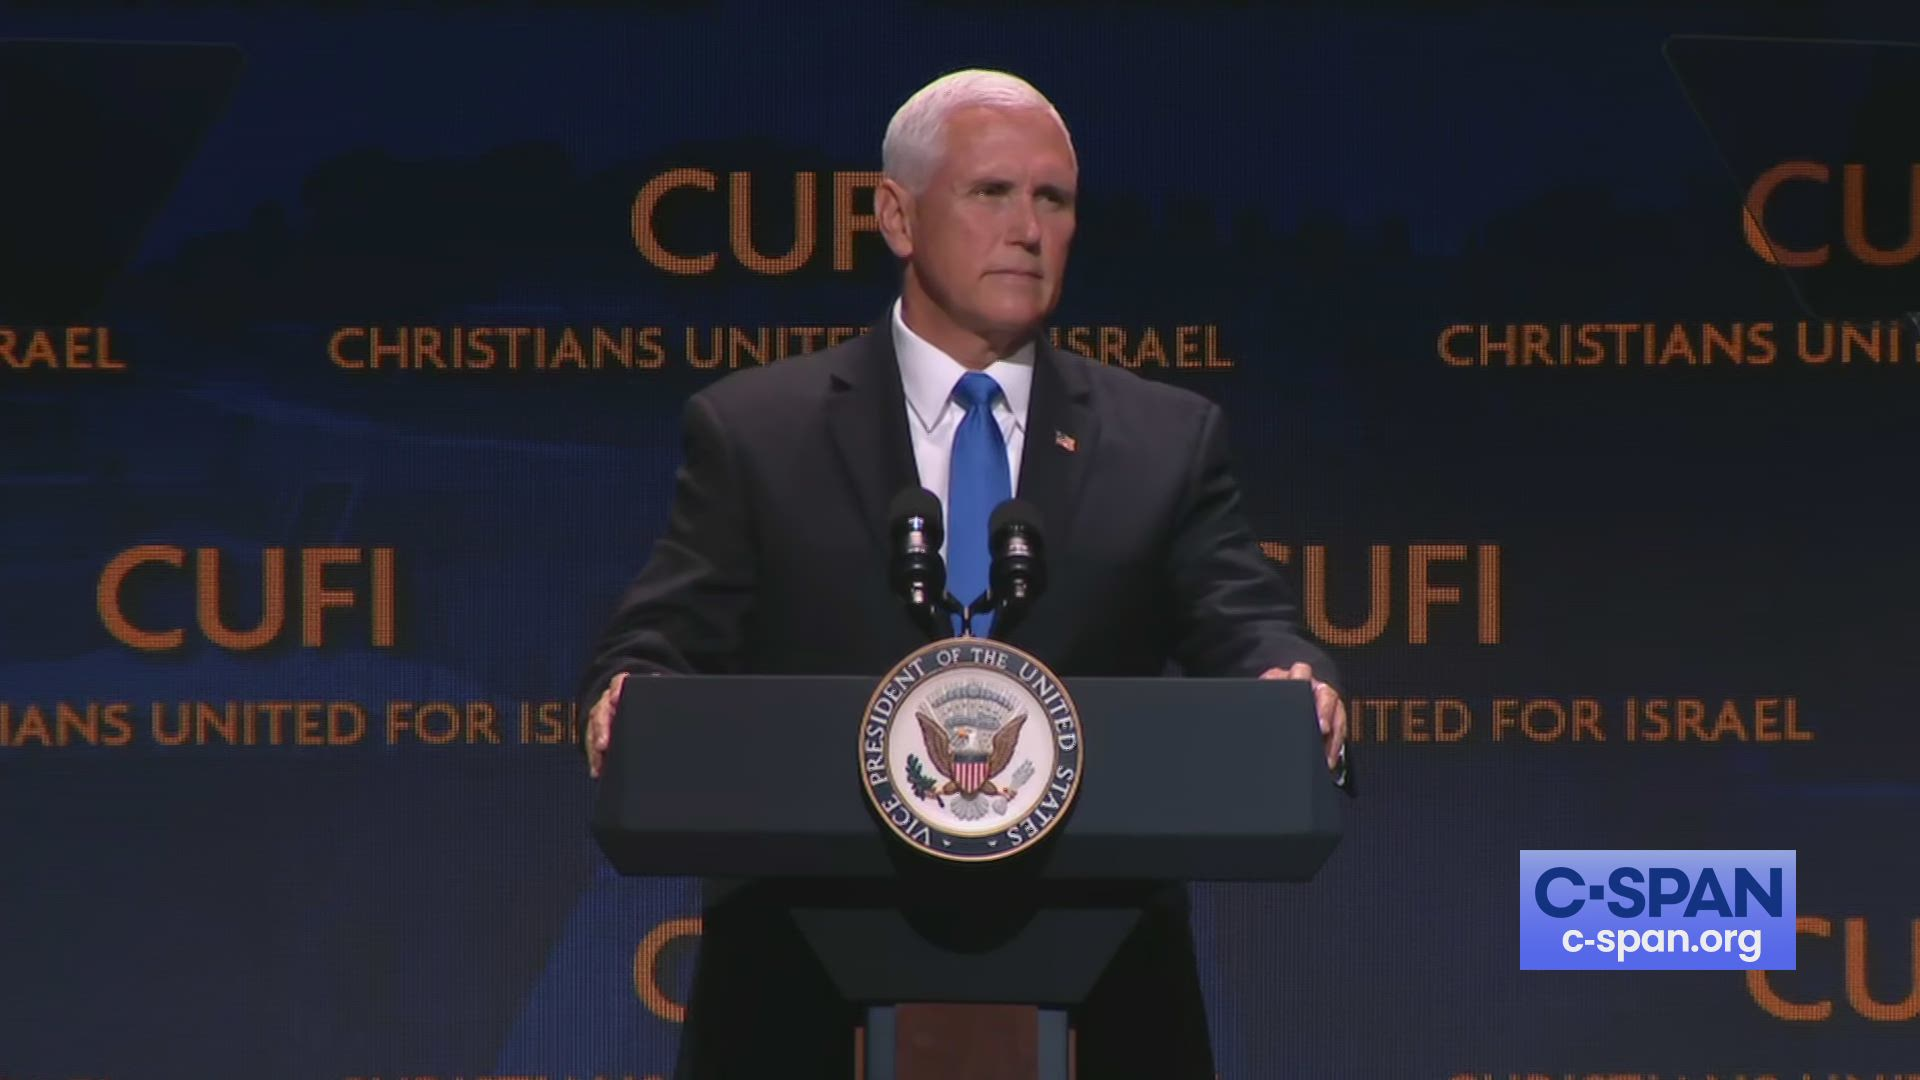 Lawmakers Revive Plan To Curb Restraint >> Vice President Pence Remarks To Christians United For Israel Conference